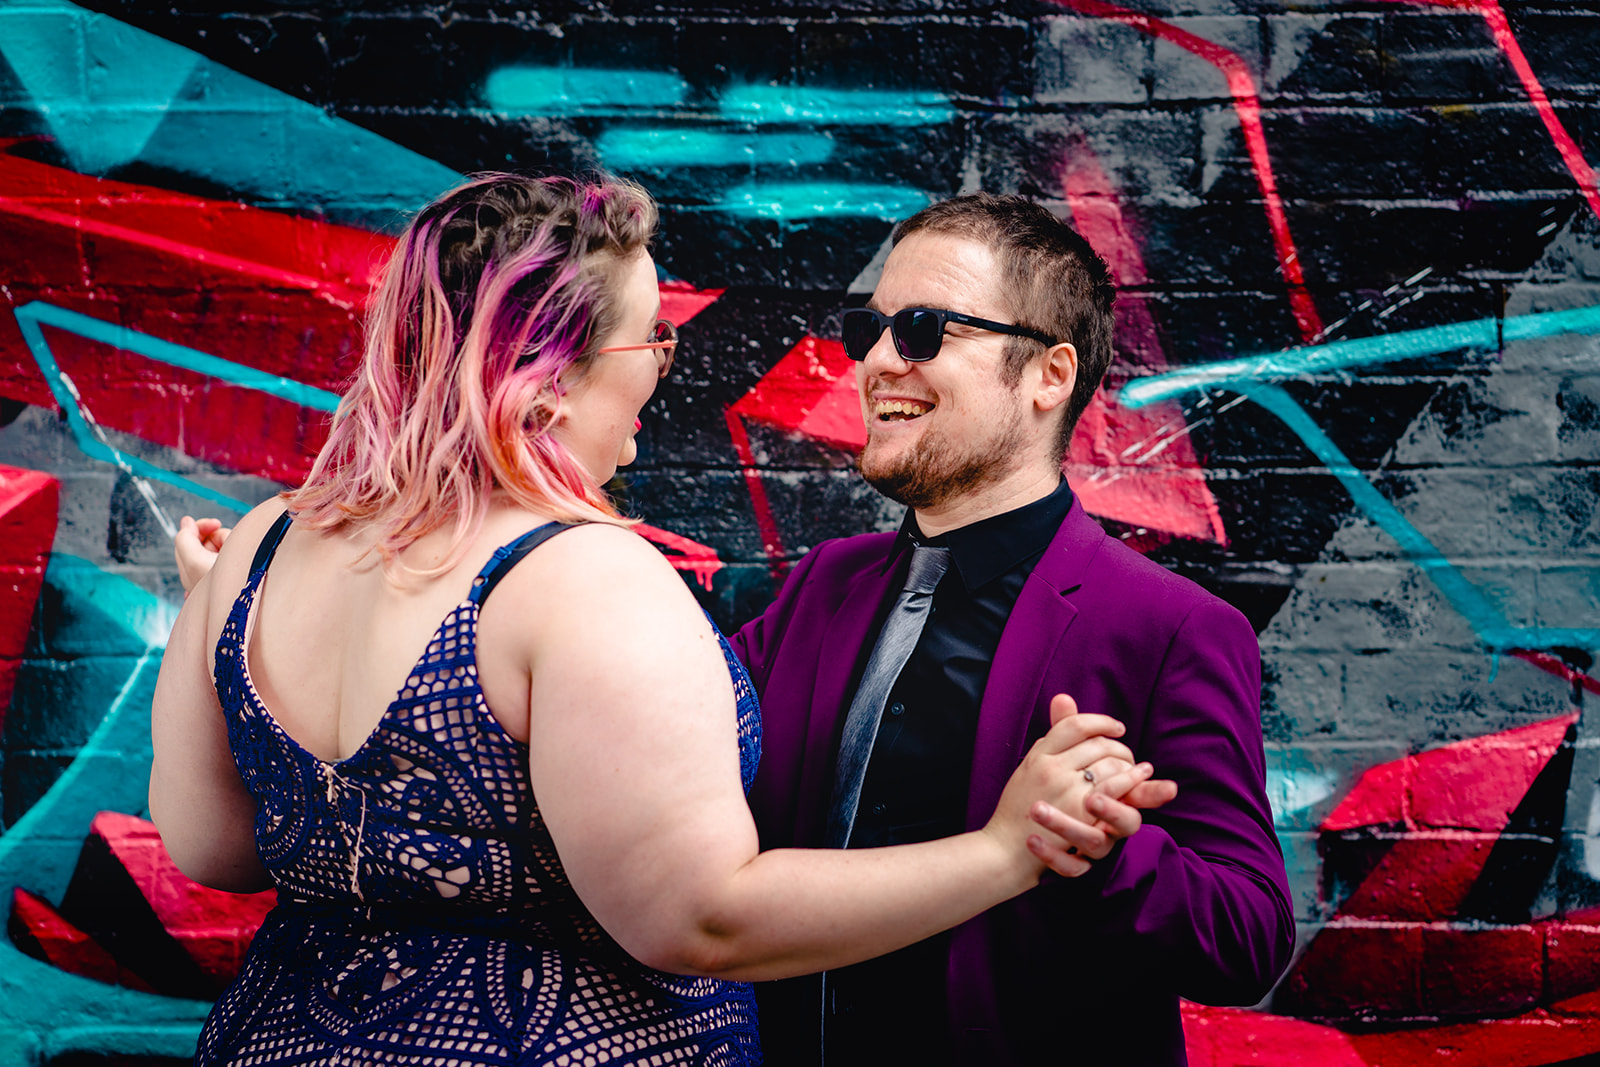 engagement shoots - birmingham engagement shoot - colourful wedding photoshoot - quirky wedding photos - fun wedding photography - alternative wedding - couple dancing